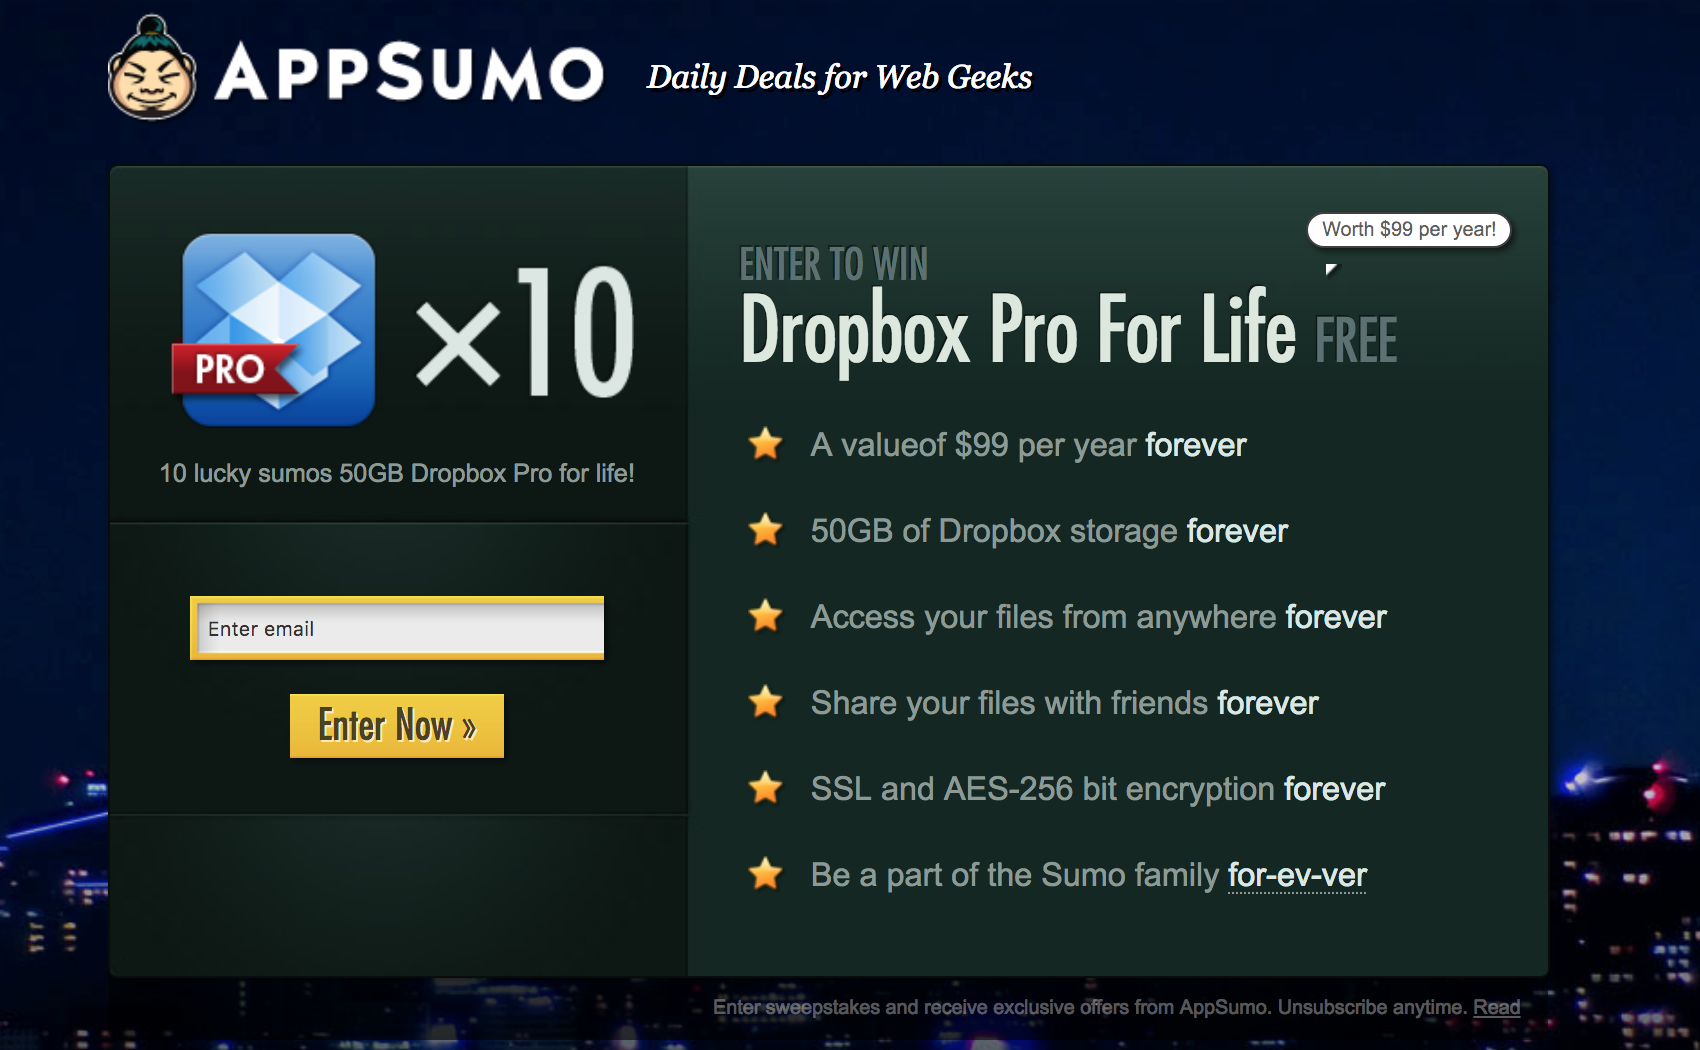 Screenshot showing an Appsumo deal